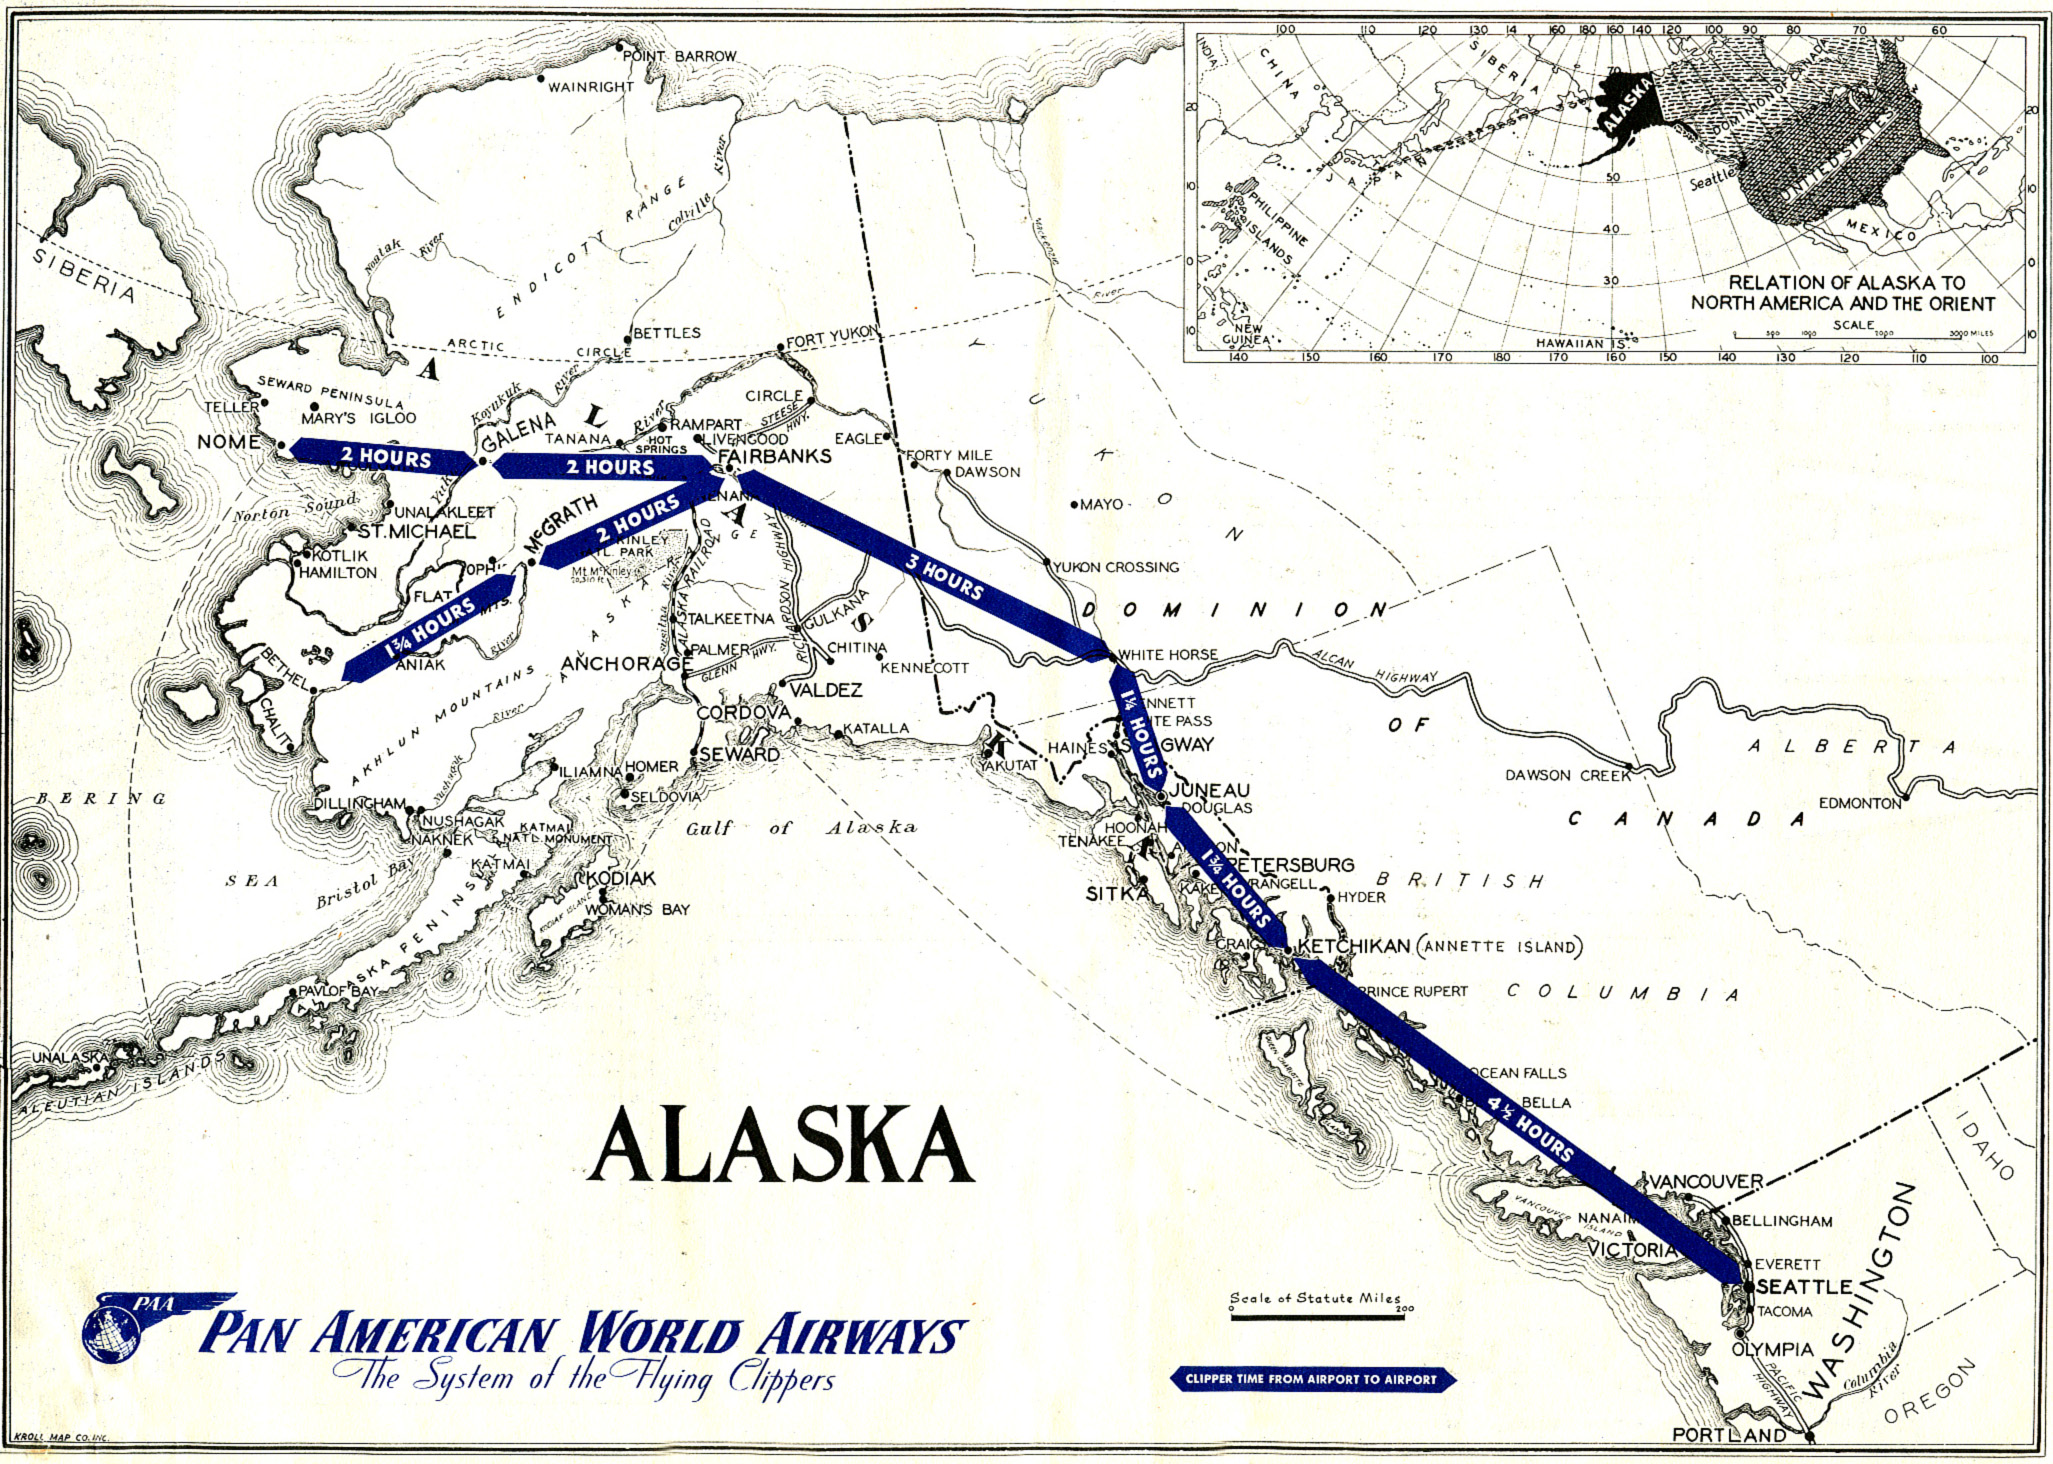 1946 Pan Am Alaskan Route Map. Image courtesy of Claude Hudspeth/Clipper Crew Collection.